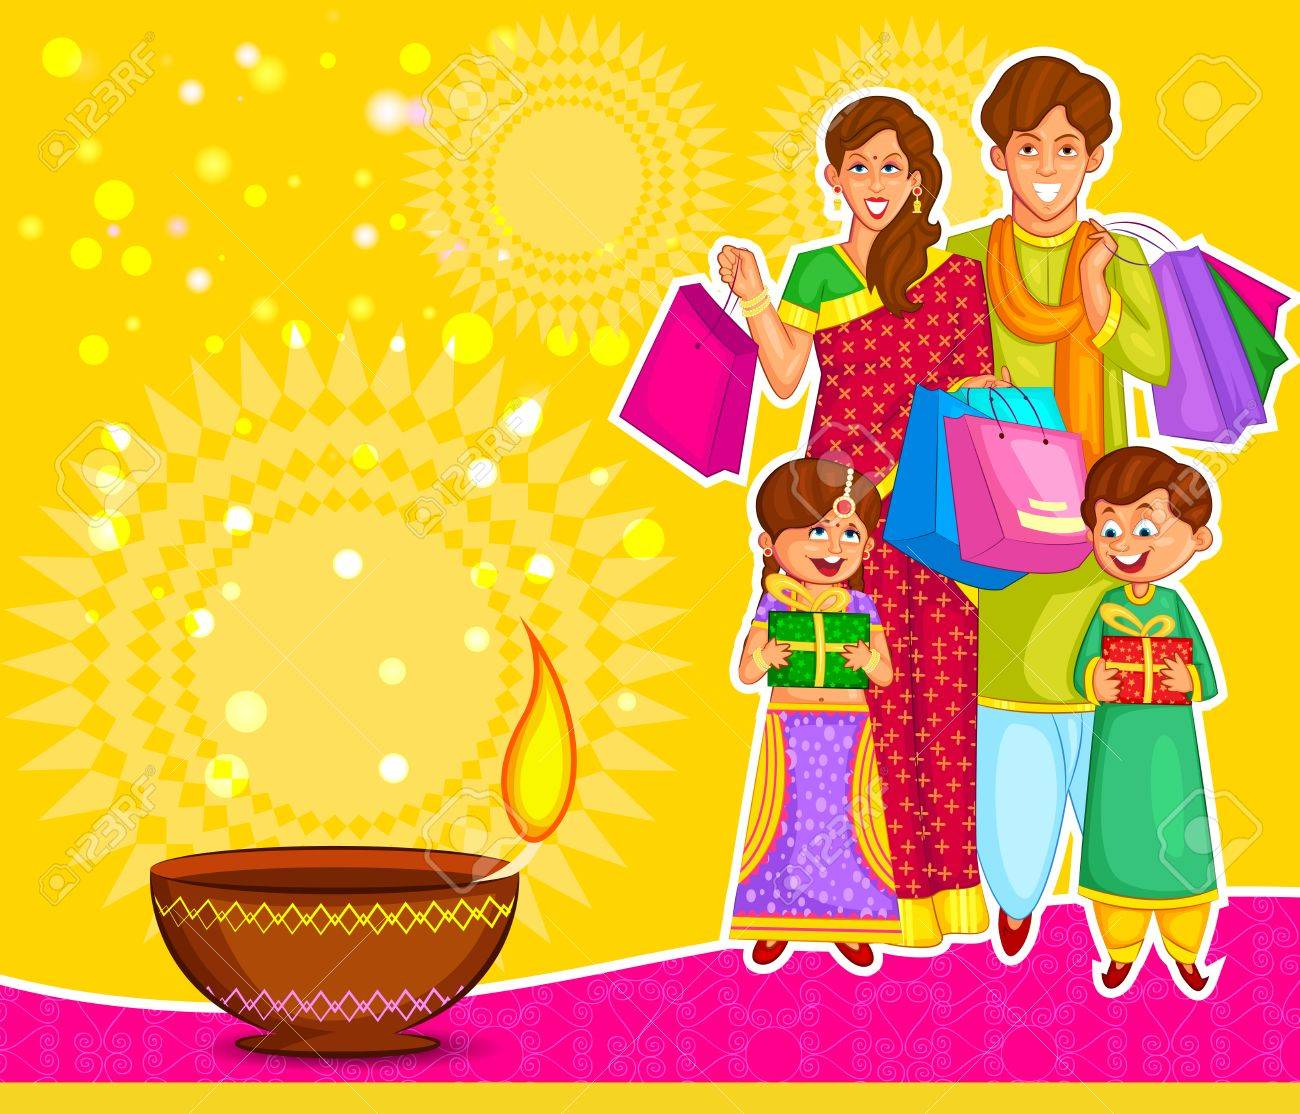 Family Is Celebrating Diwali With Gifts In Vector Royalty Free ... for Deepavali Celebration Clipart  56bof